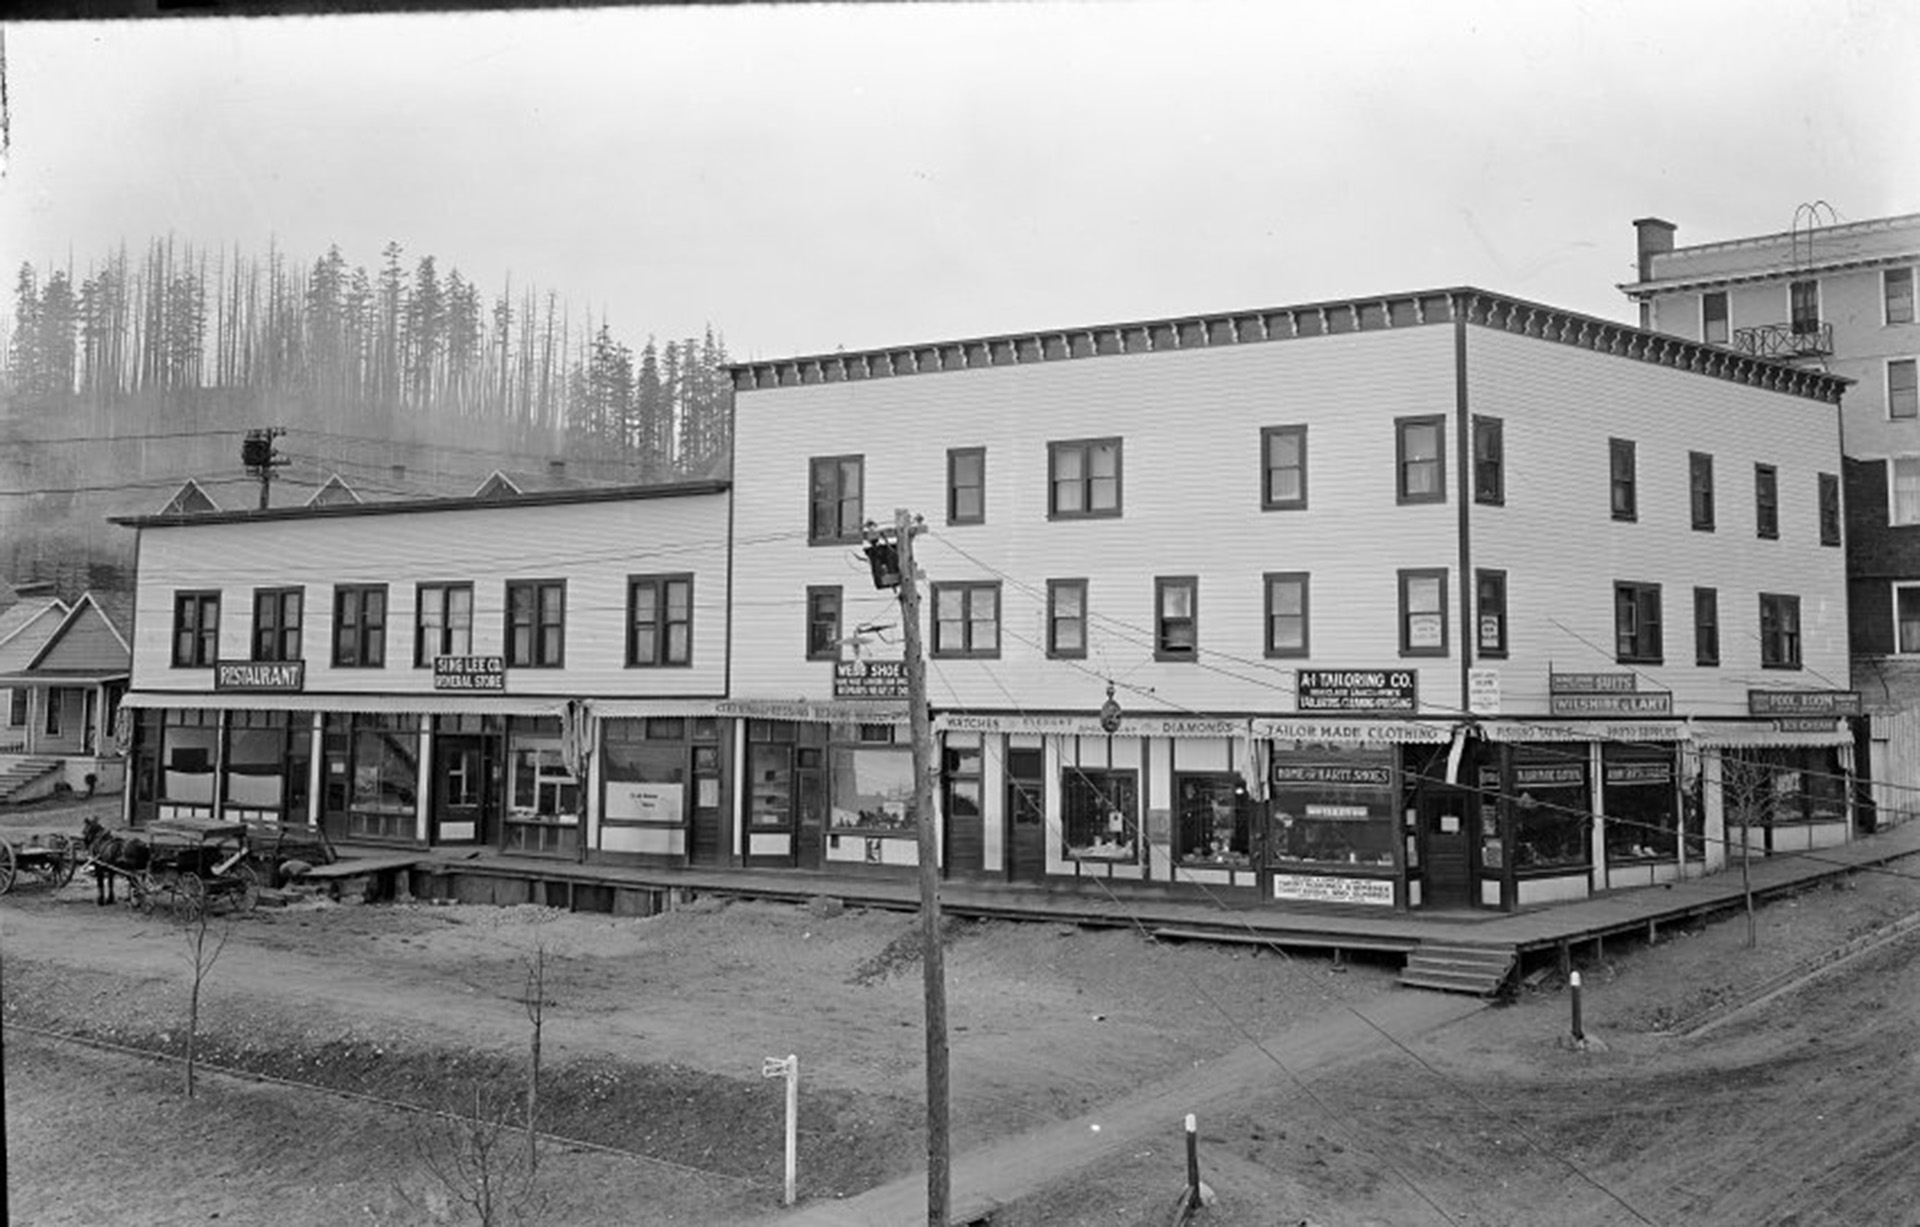 The Sing Lee Company building (known as China Block) in Powell River Townsite, 1916.